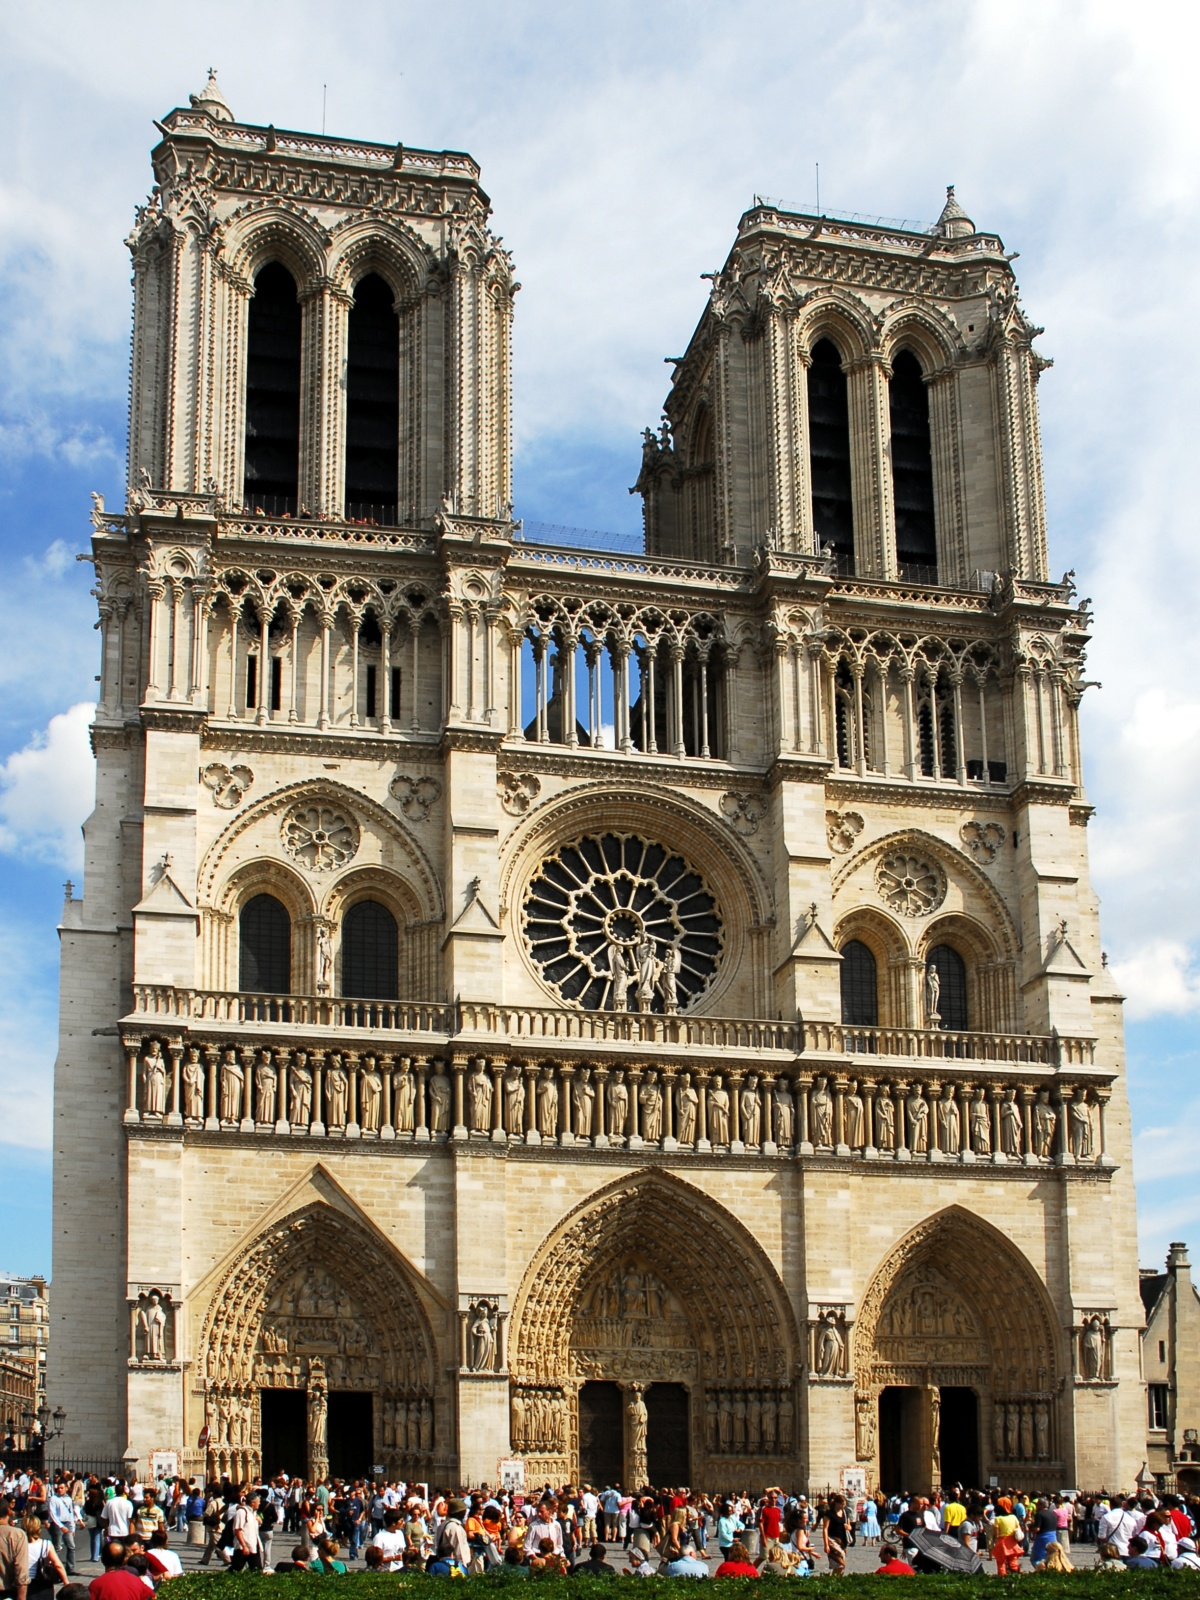 http://upload.wikimedia.org/wikipedia/commons/1/14/060806-France-Paris-Notre_Dame.jpg